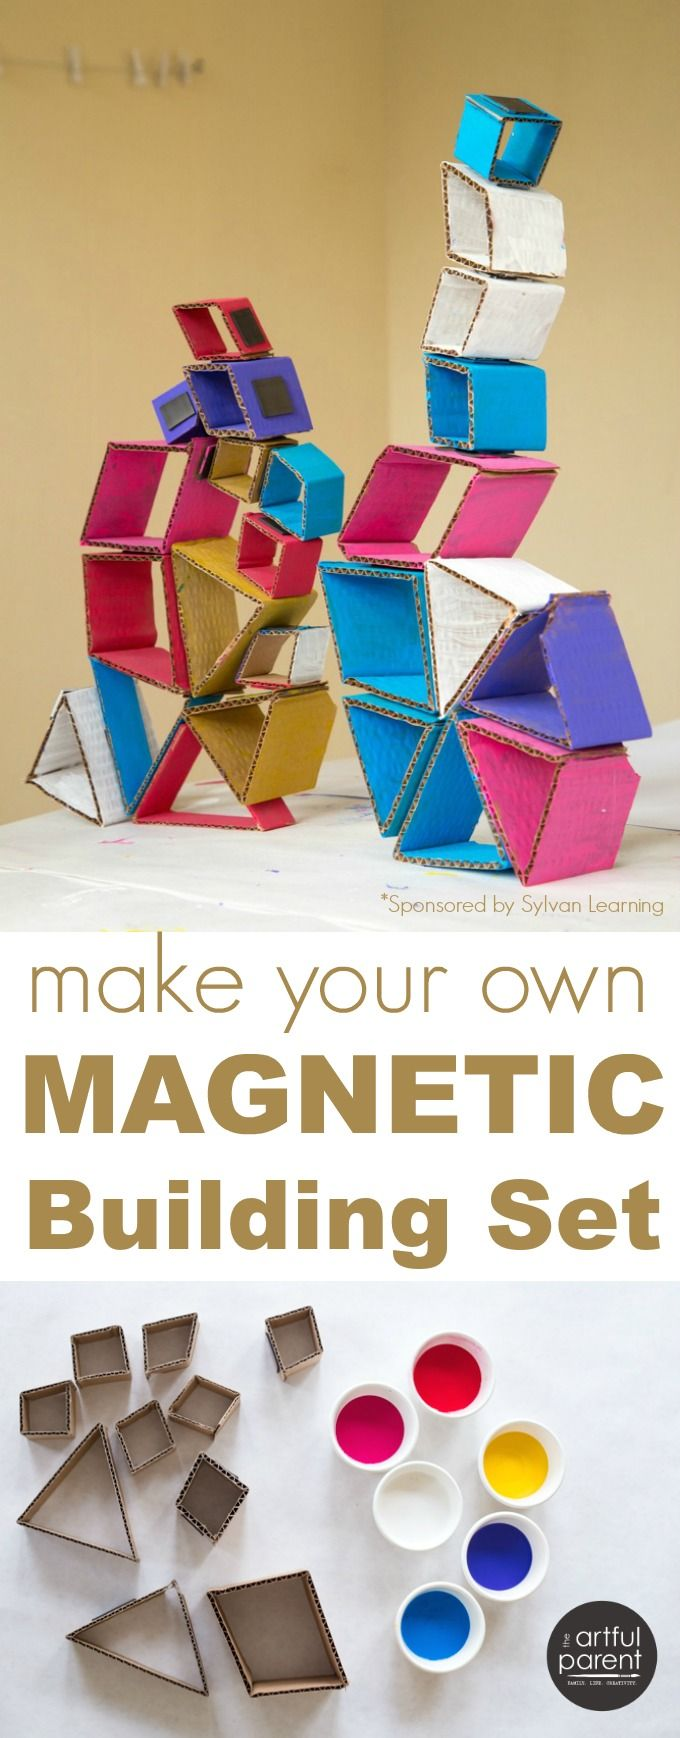 Make your own magnetic building set with cardboard and magnetic tape. So fun for kids!